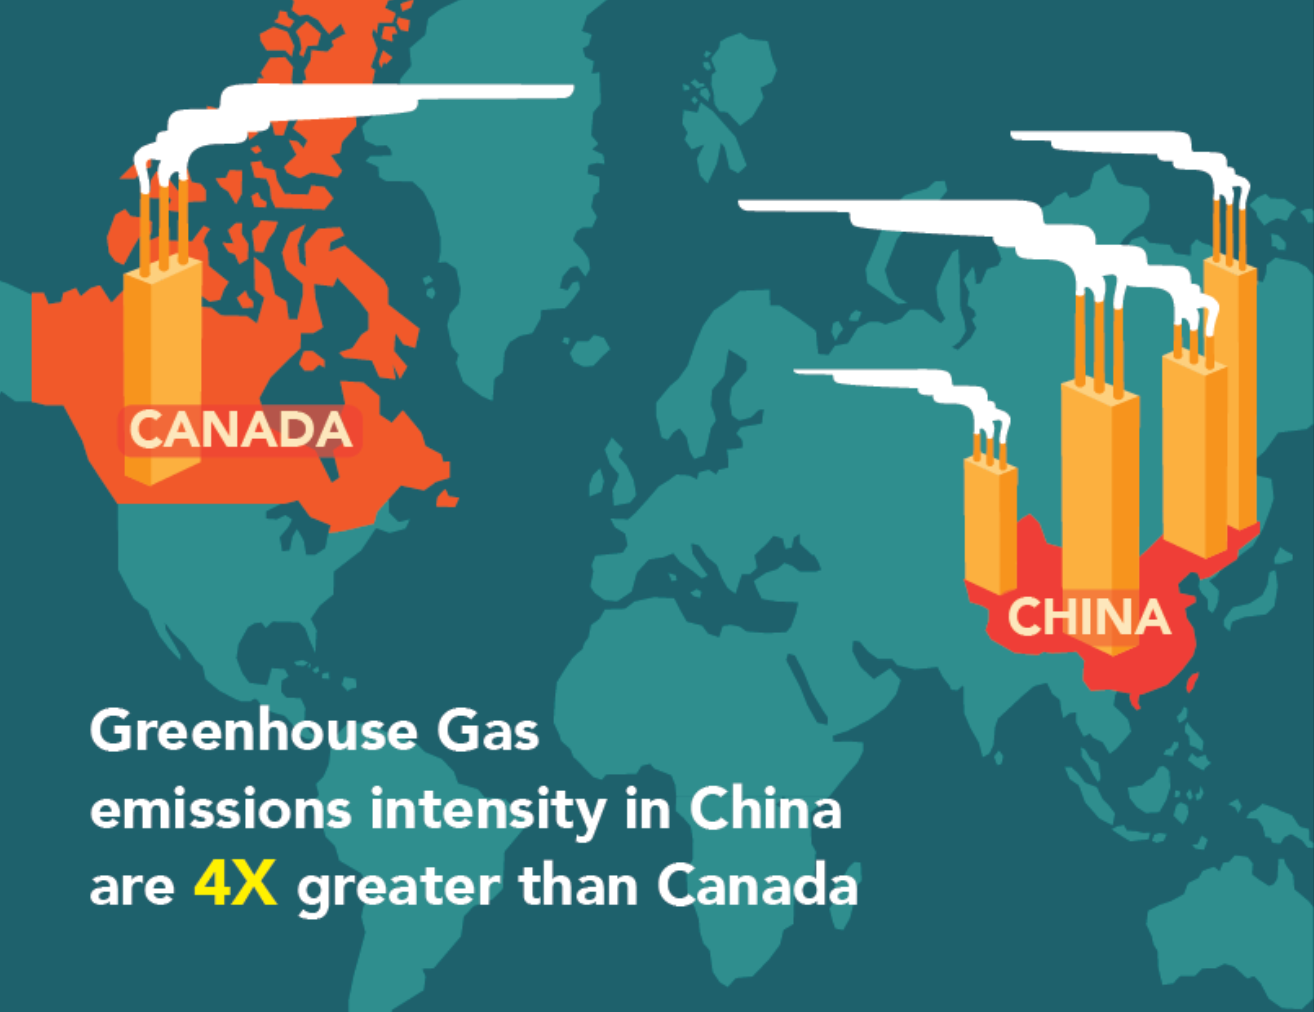 greenhouse gas emissions intensity china 4x greater than canada aluminum carbon leakage